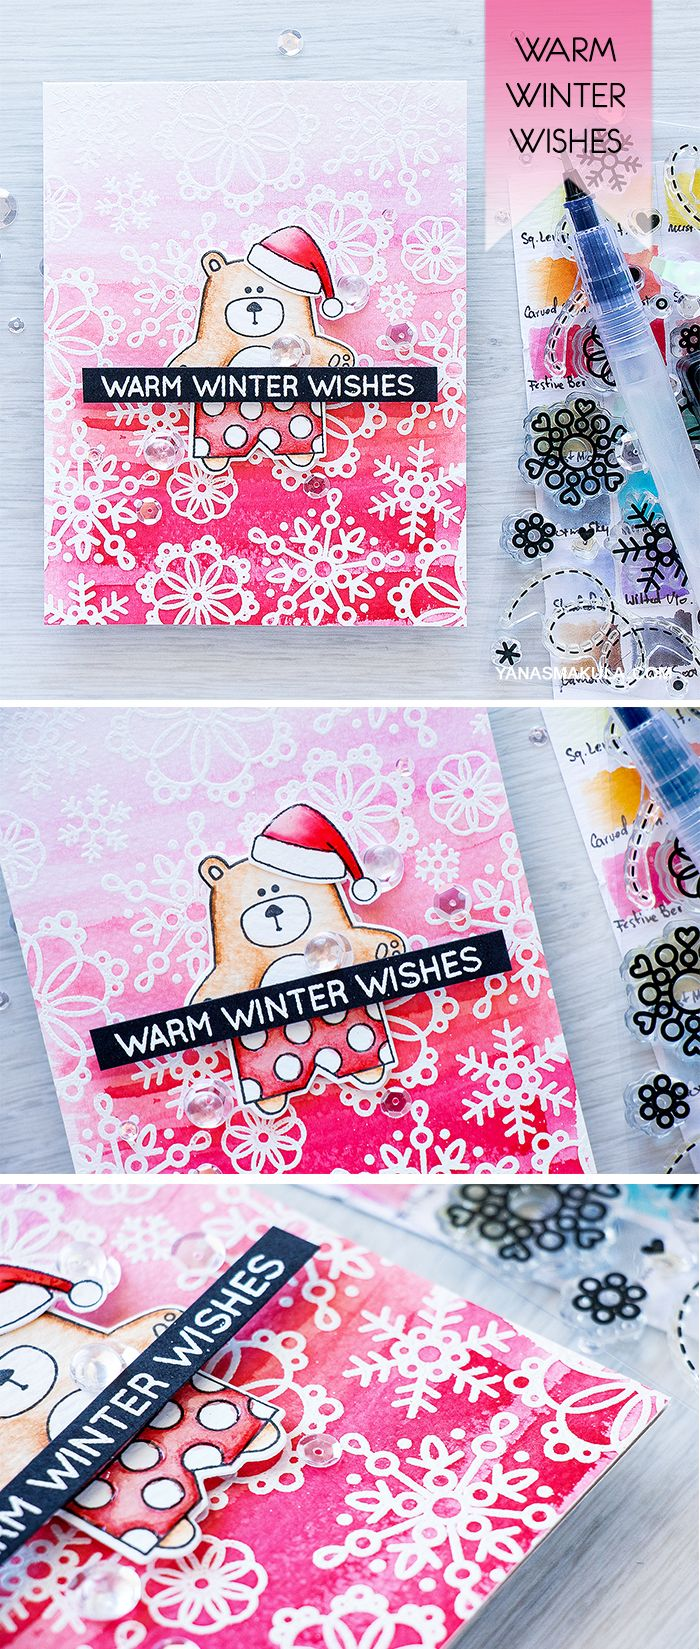 Warm Winter Wishes with Simon Says Stamp Summertime Animals Bear and Cute Snowflakes stamps! For details, visit http://www.yanasmakula.com/?p=54875